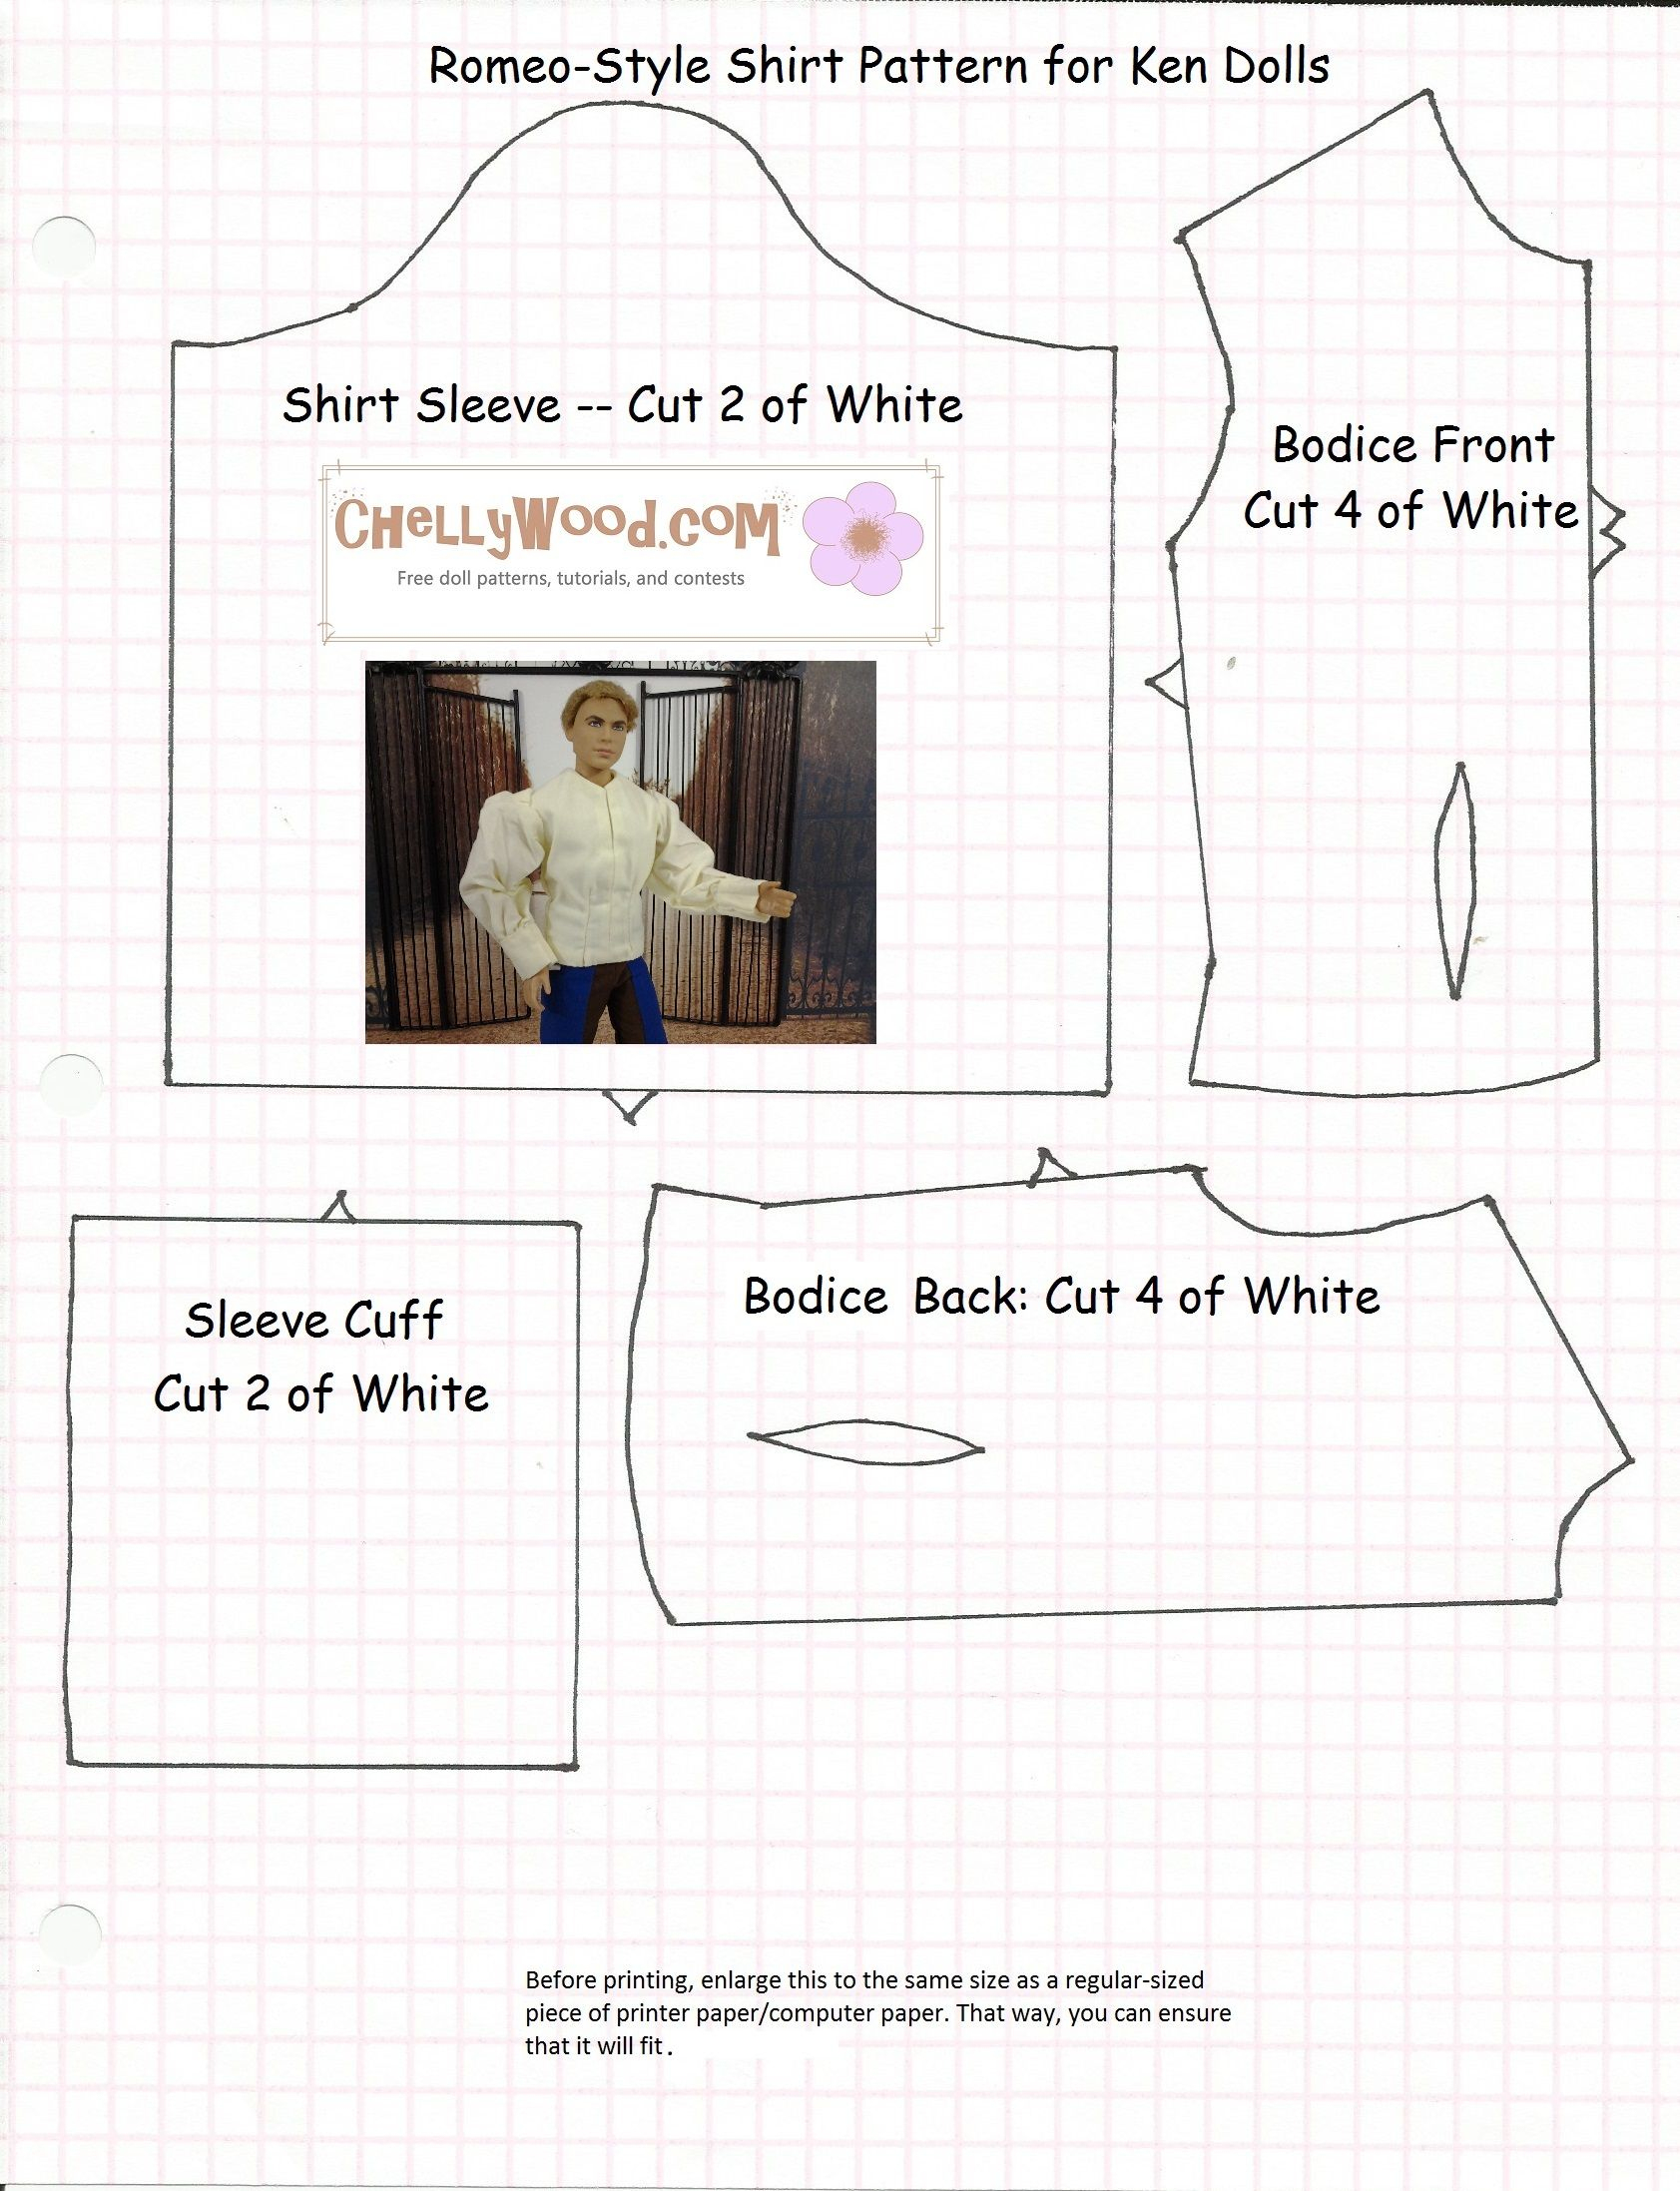 Lots Of Free Printable Patterns Like This One At Chellywood - Ken Clothes Patterns Free Printable